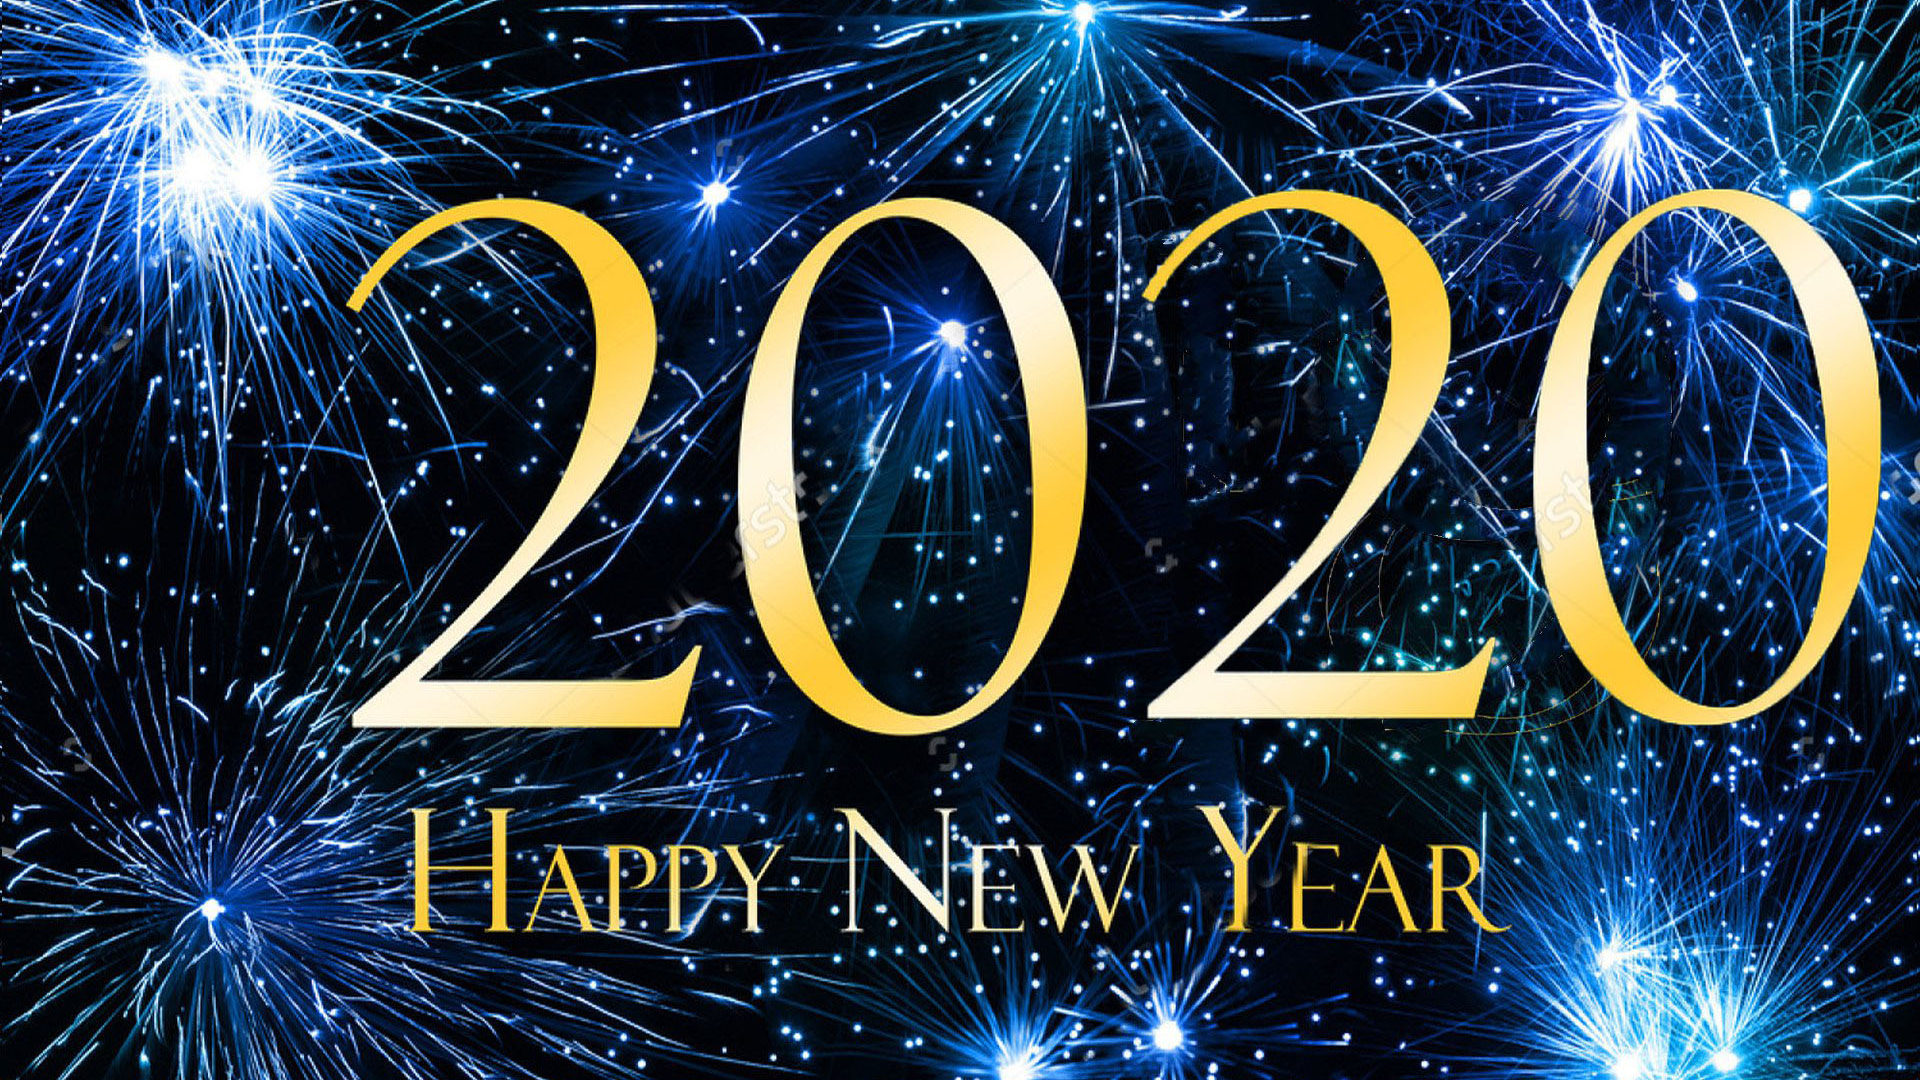 Happy New Year 2020 Blue Hd Wallpaper For Laptop And Tablet 1920x1080